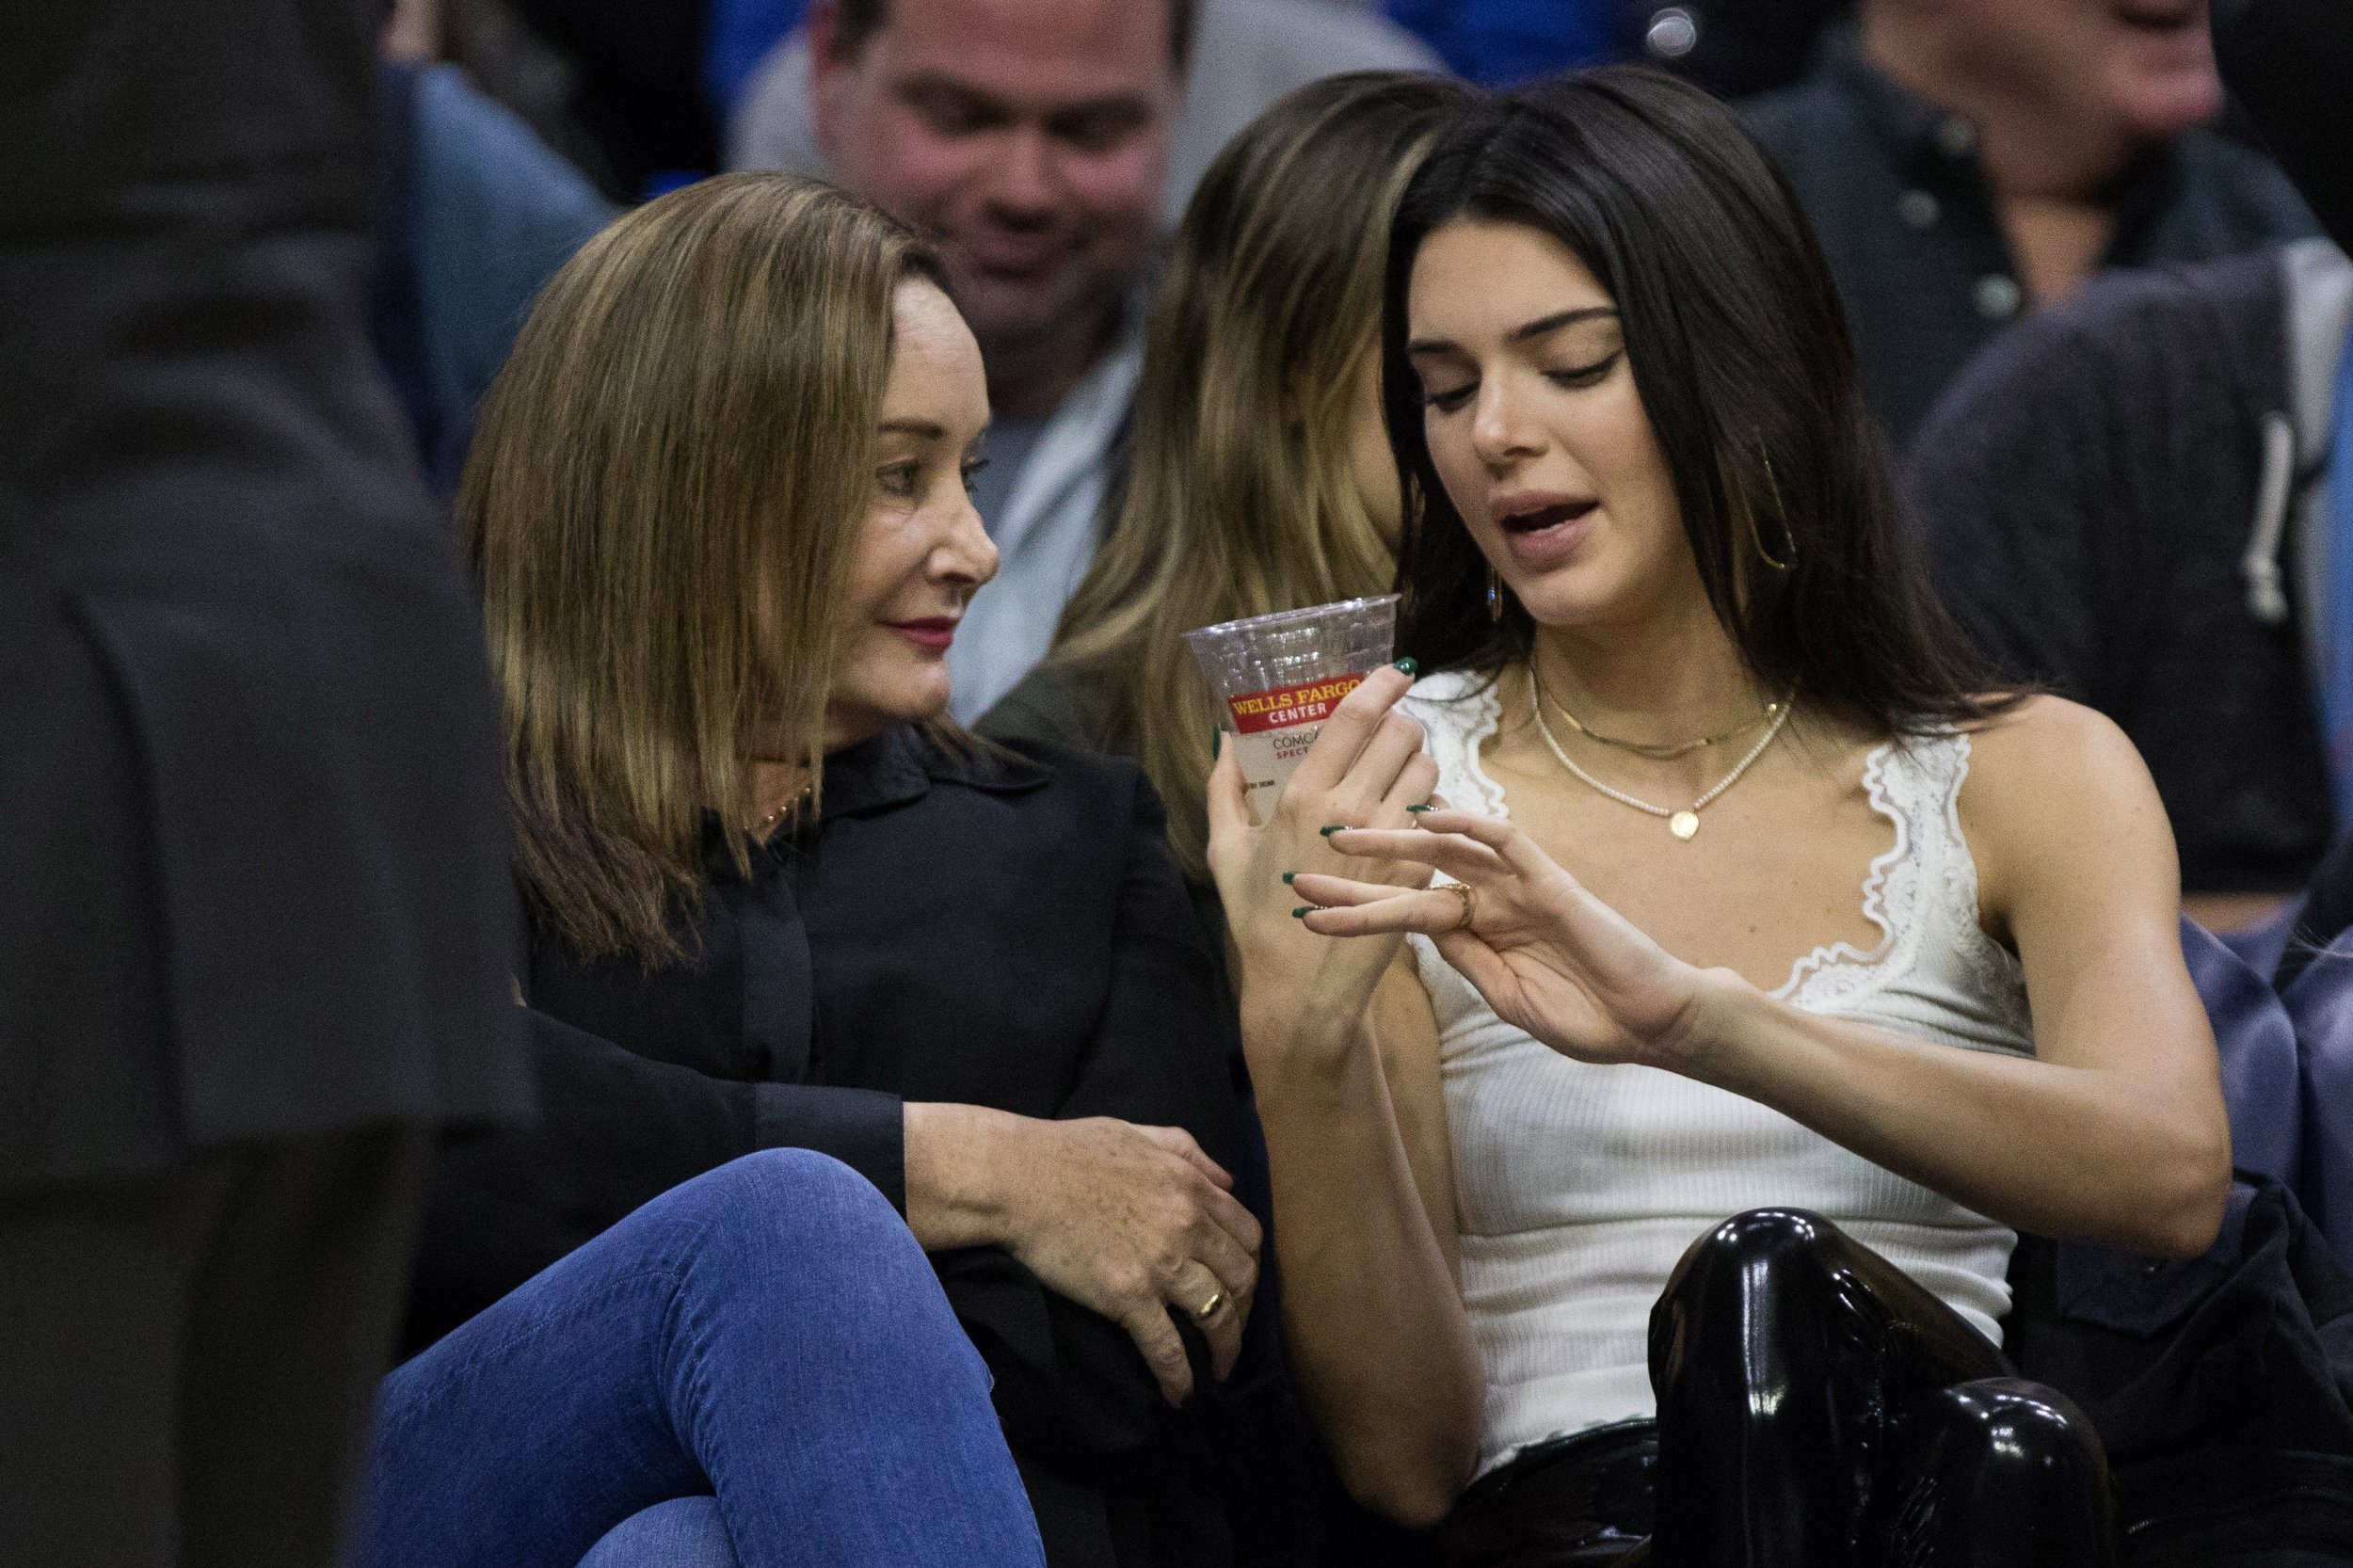 Nov 30, 2018; Philadelphia, PA, USA; Kendall Jenner (R) talks with Philadelphia 76ers guard Ben Simmons (not pictured) mother Julie Simmons (L) during the second quarter of a game against the Washington Wizards at Wells Fargo Center. Mandatory Credit: Bill Streicher-USA TODAY Sports